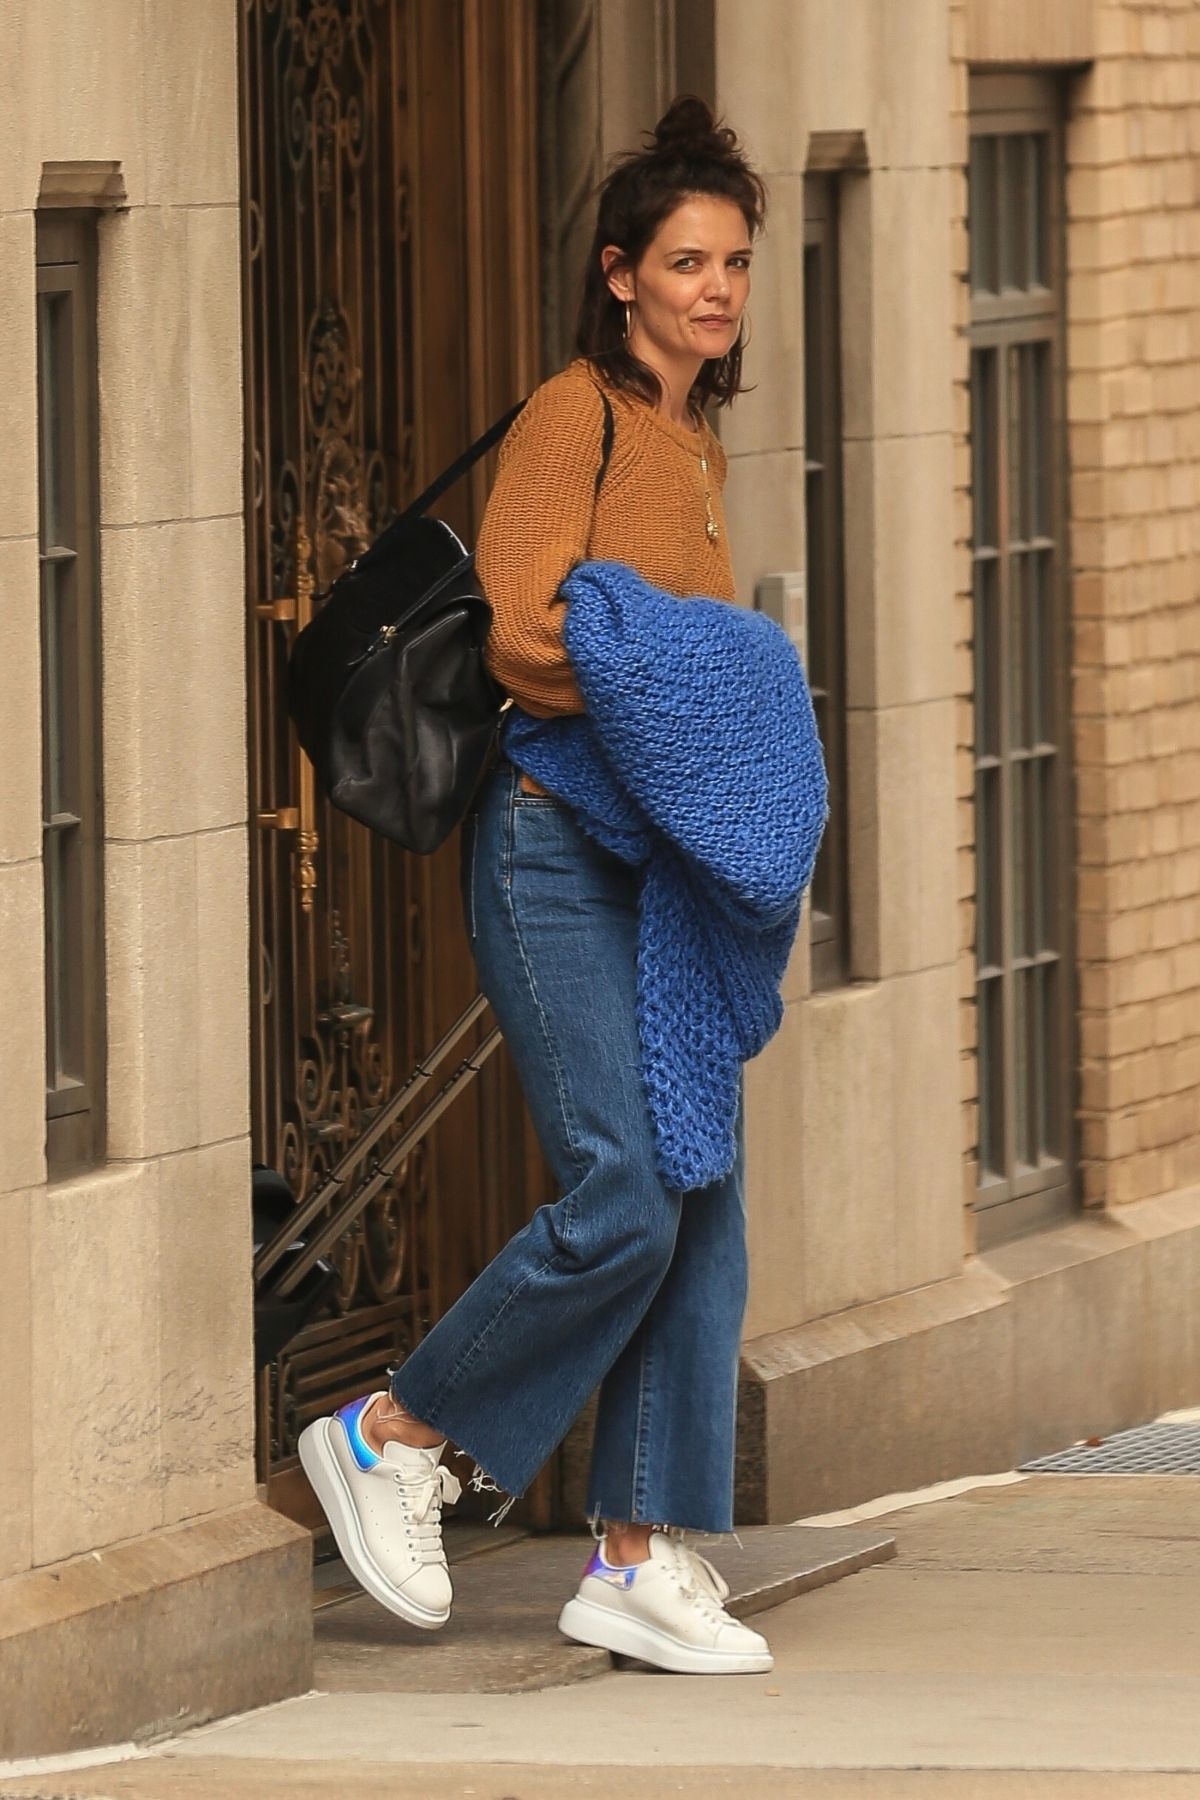 Katie Holmes Leaves Her Apartment In New York 03 15 2019